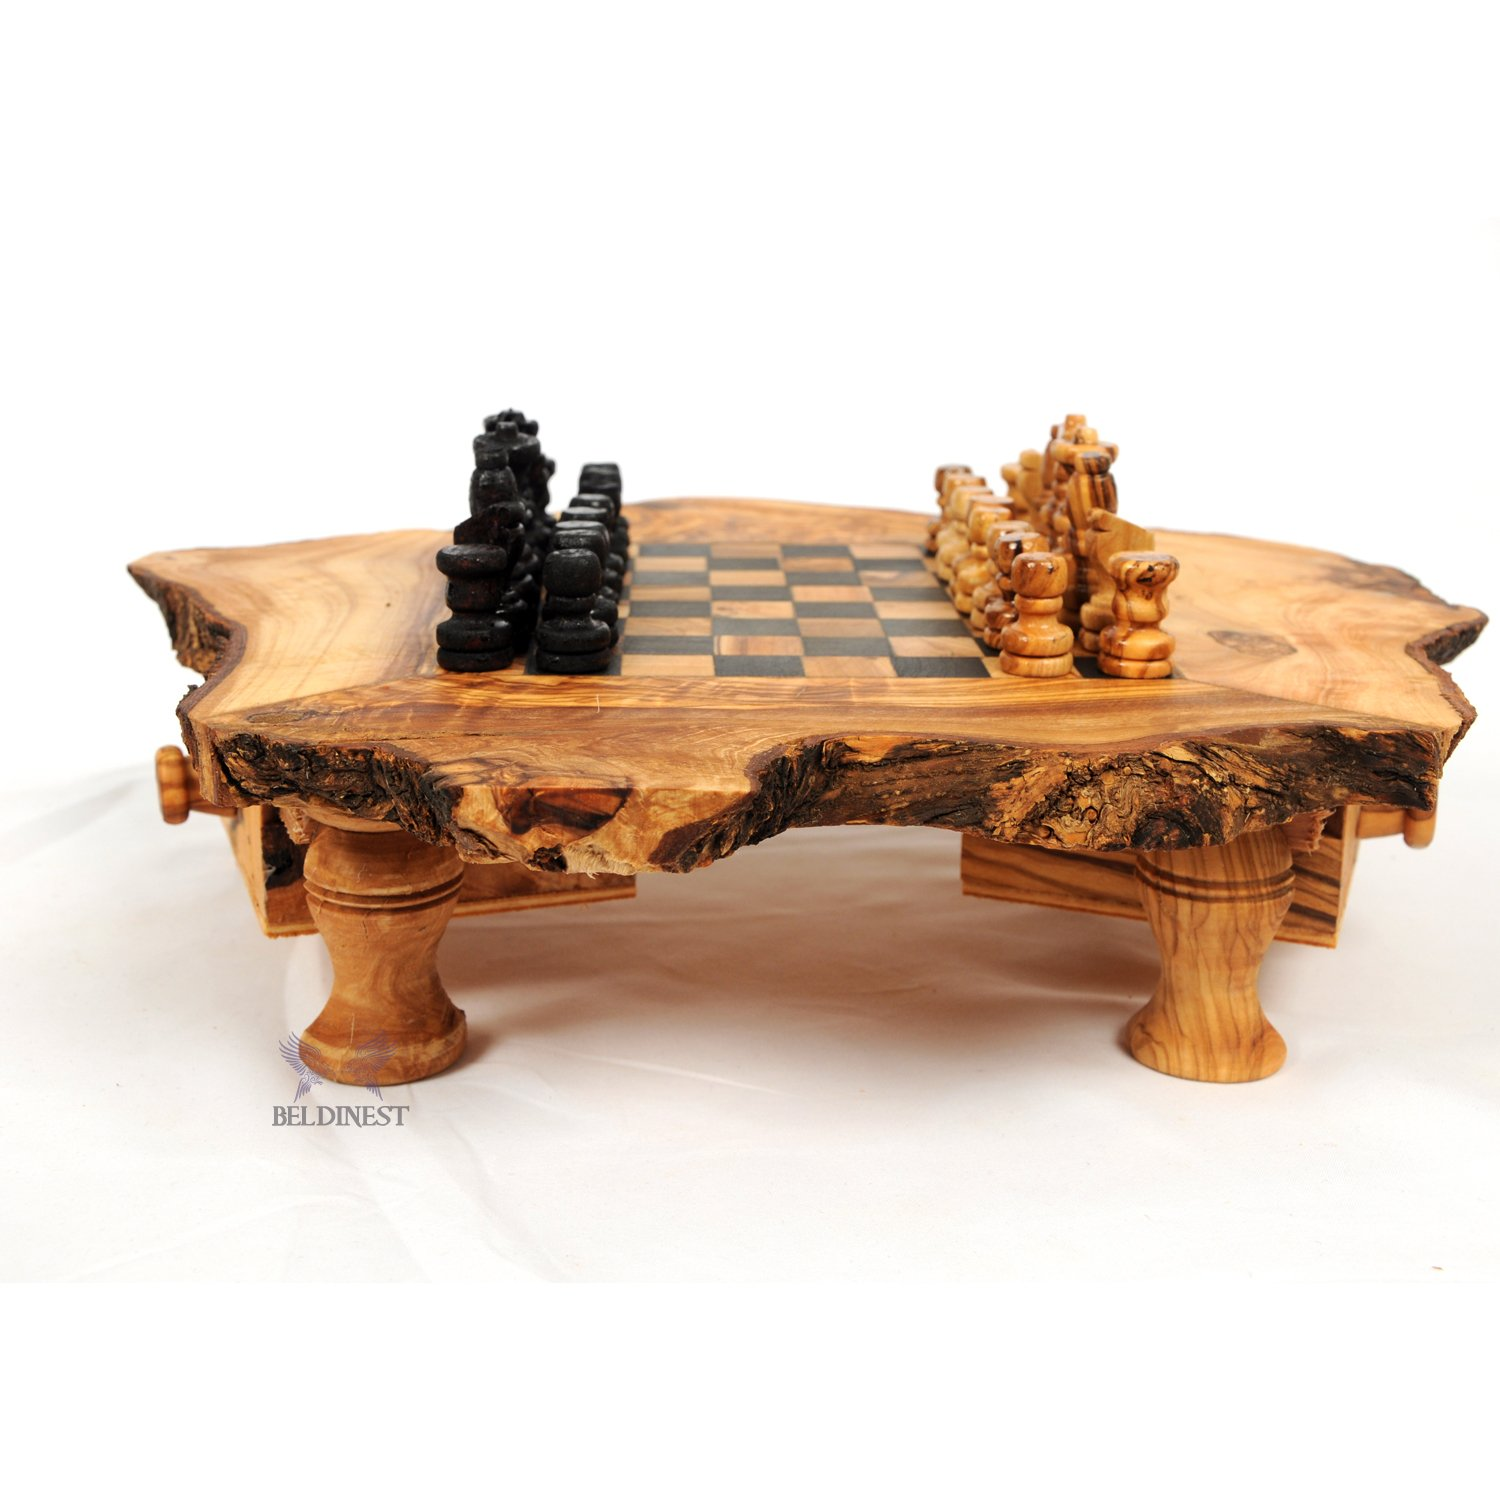 Amazon Olive Wood Rustic Chess Set Handcrafted Chess Game